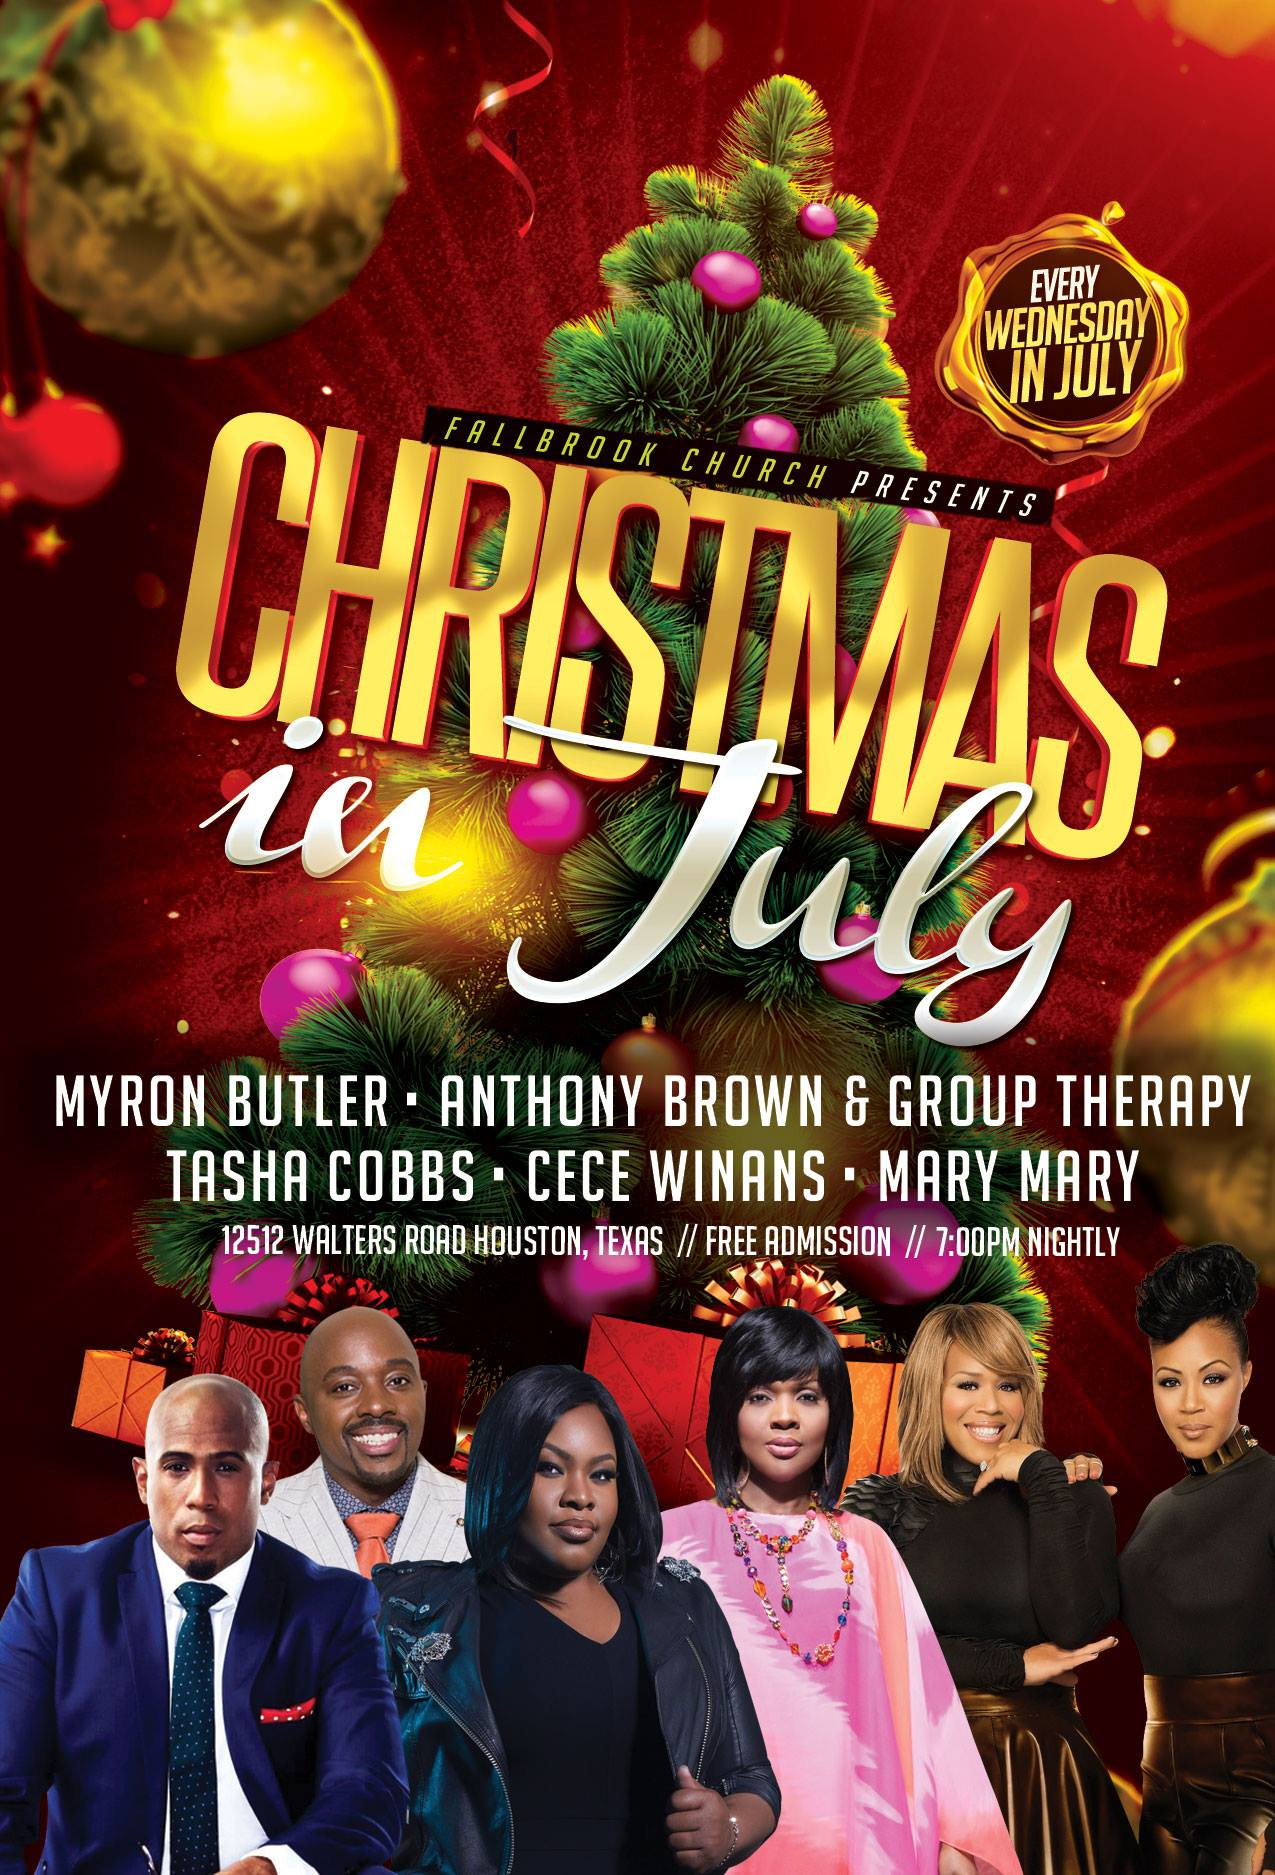 Fallbrook Church Christmas In July 2020 Fallbrook Church brings out gospel stars for 'Christmas in July